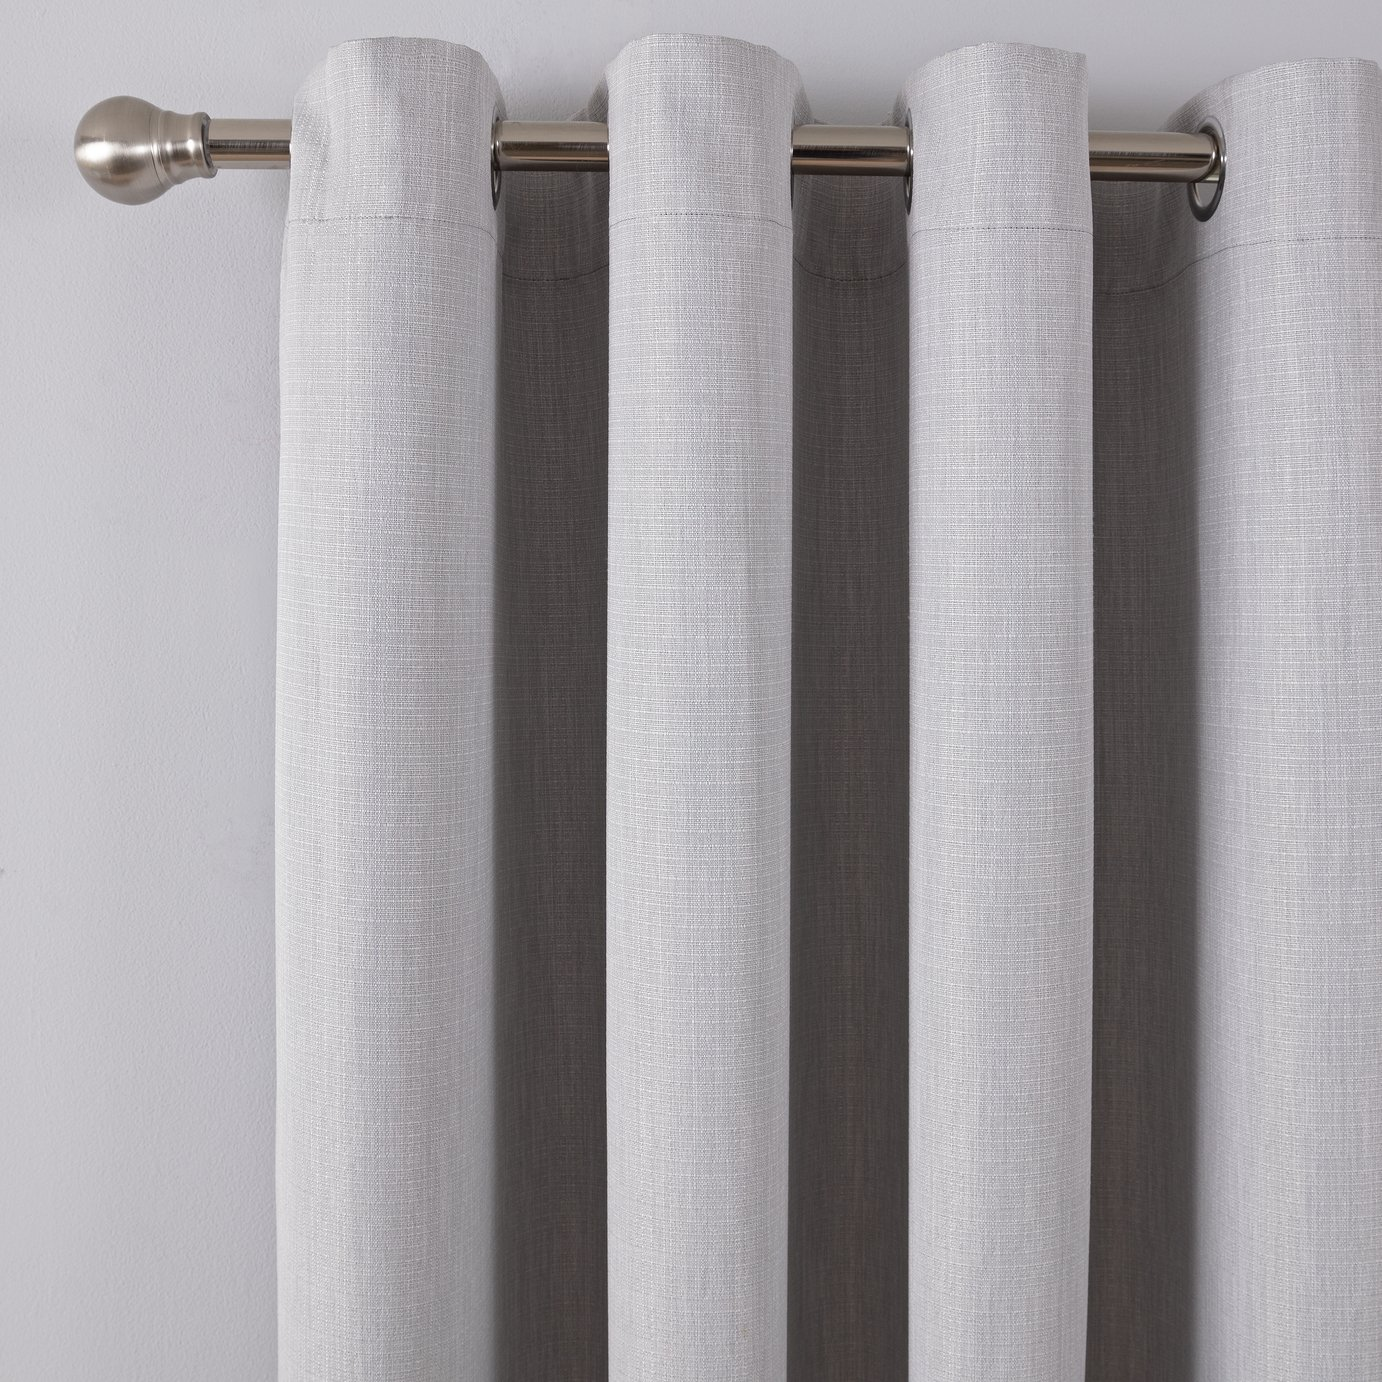 Argos Home Linen Look Eyelet Curtains - Grey